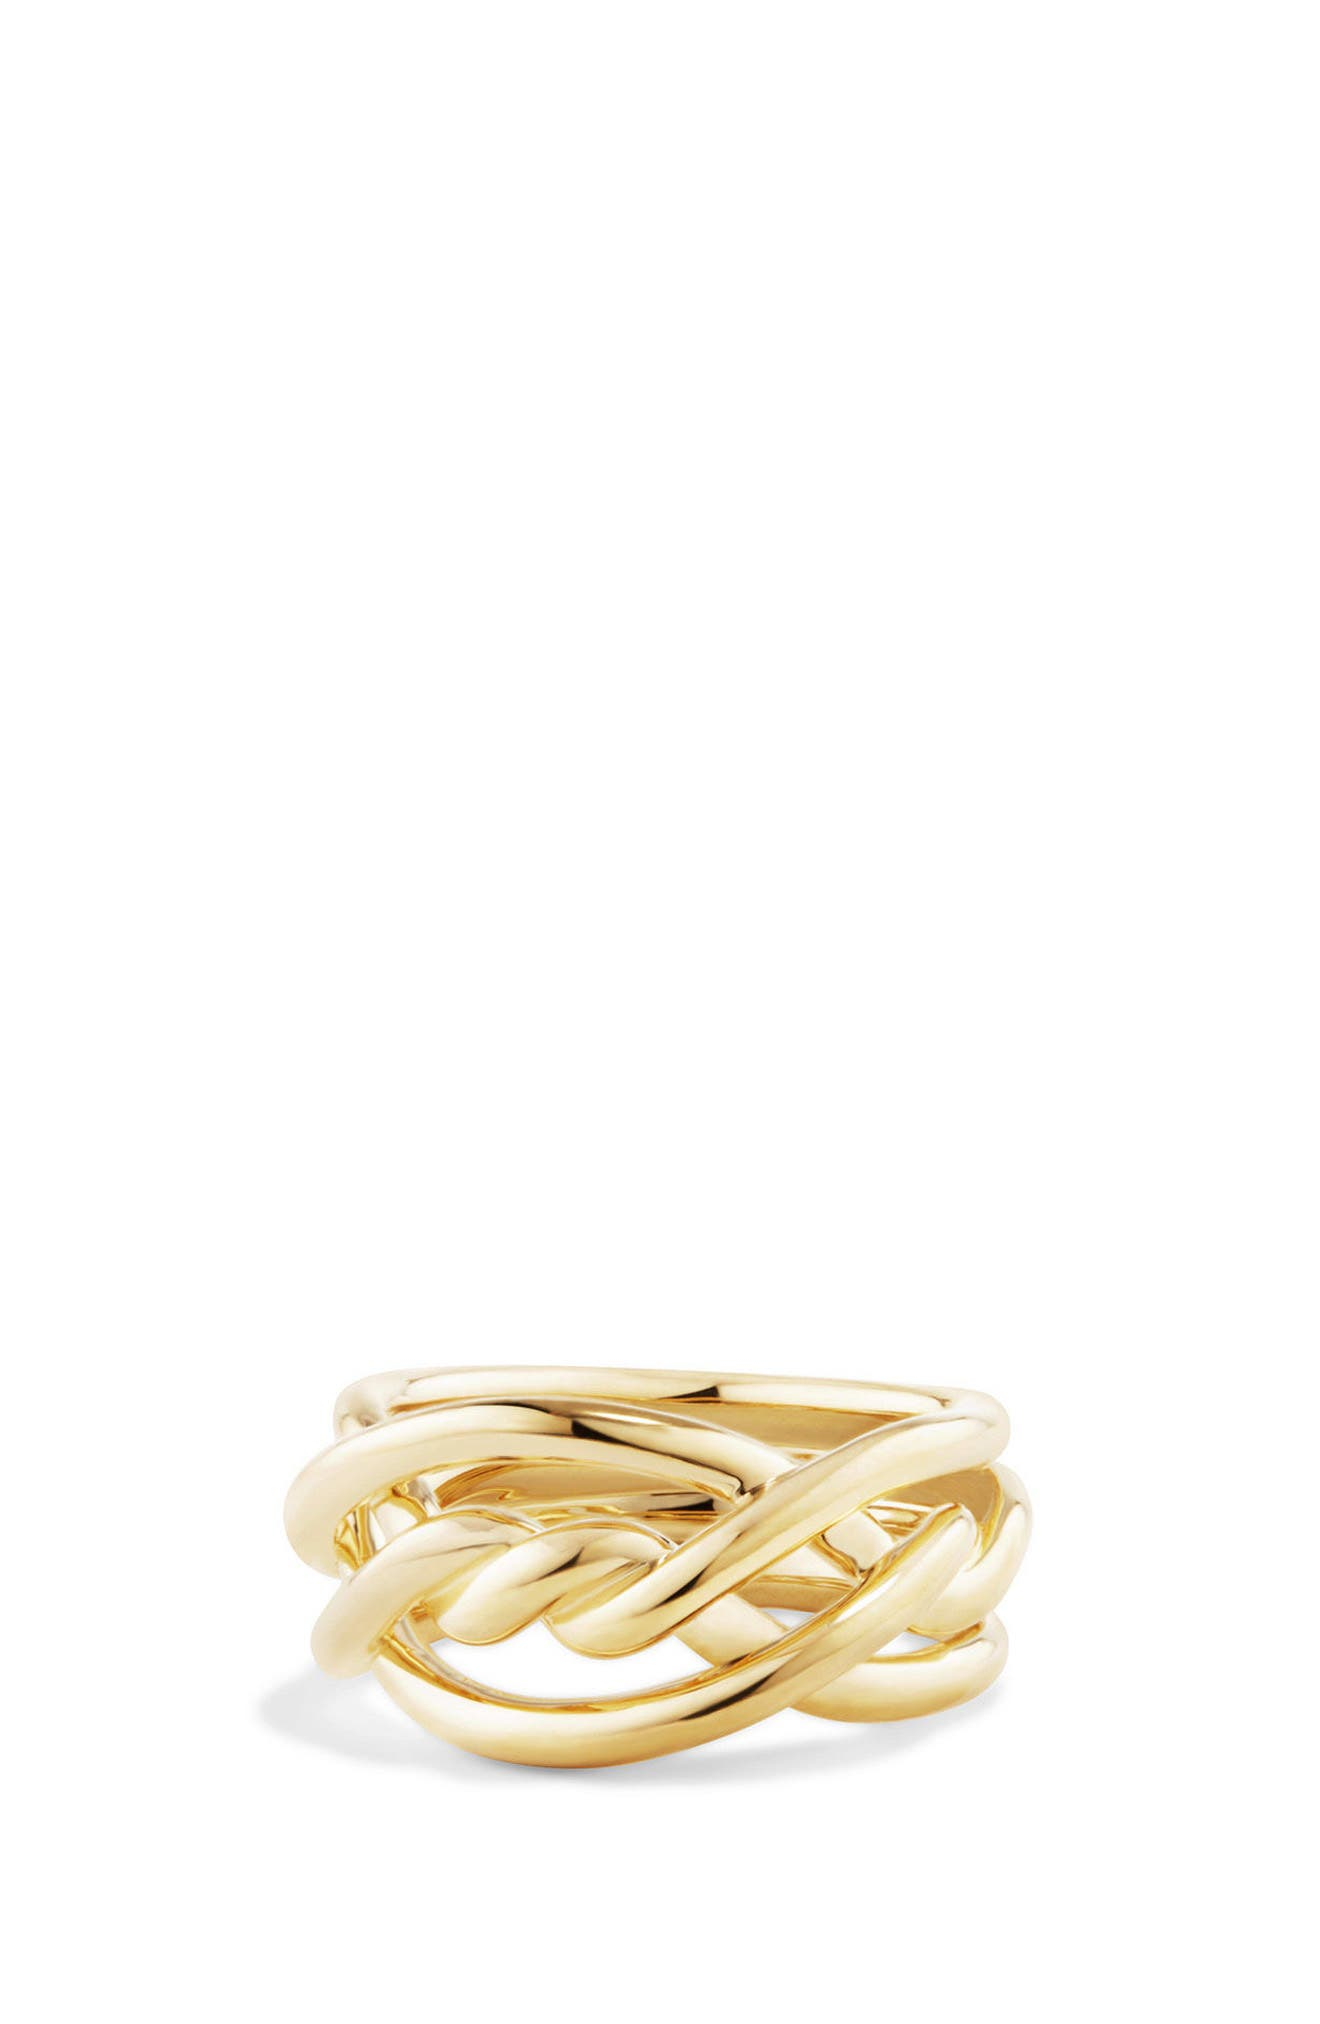 Continuance Ring in 18K Gold,                             Main thumbnail 1, color,                             Yellow Gold